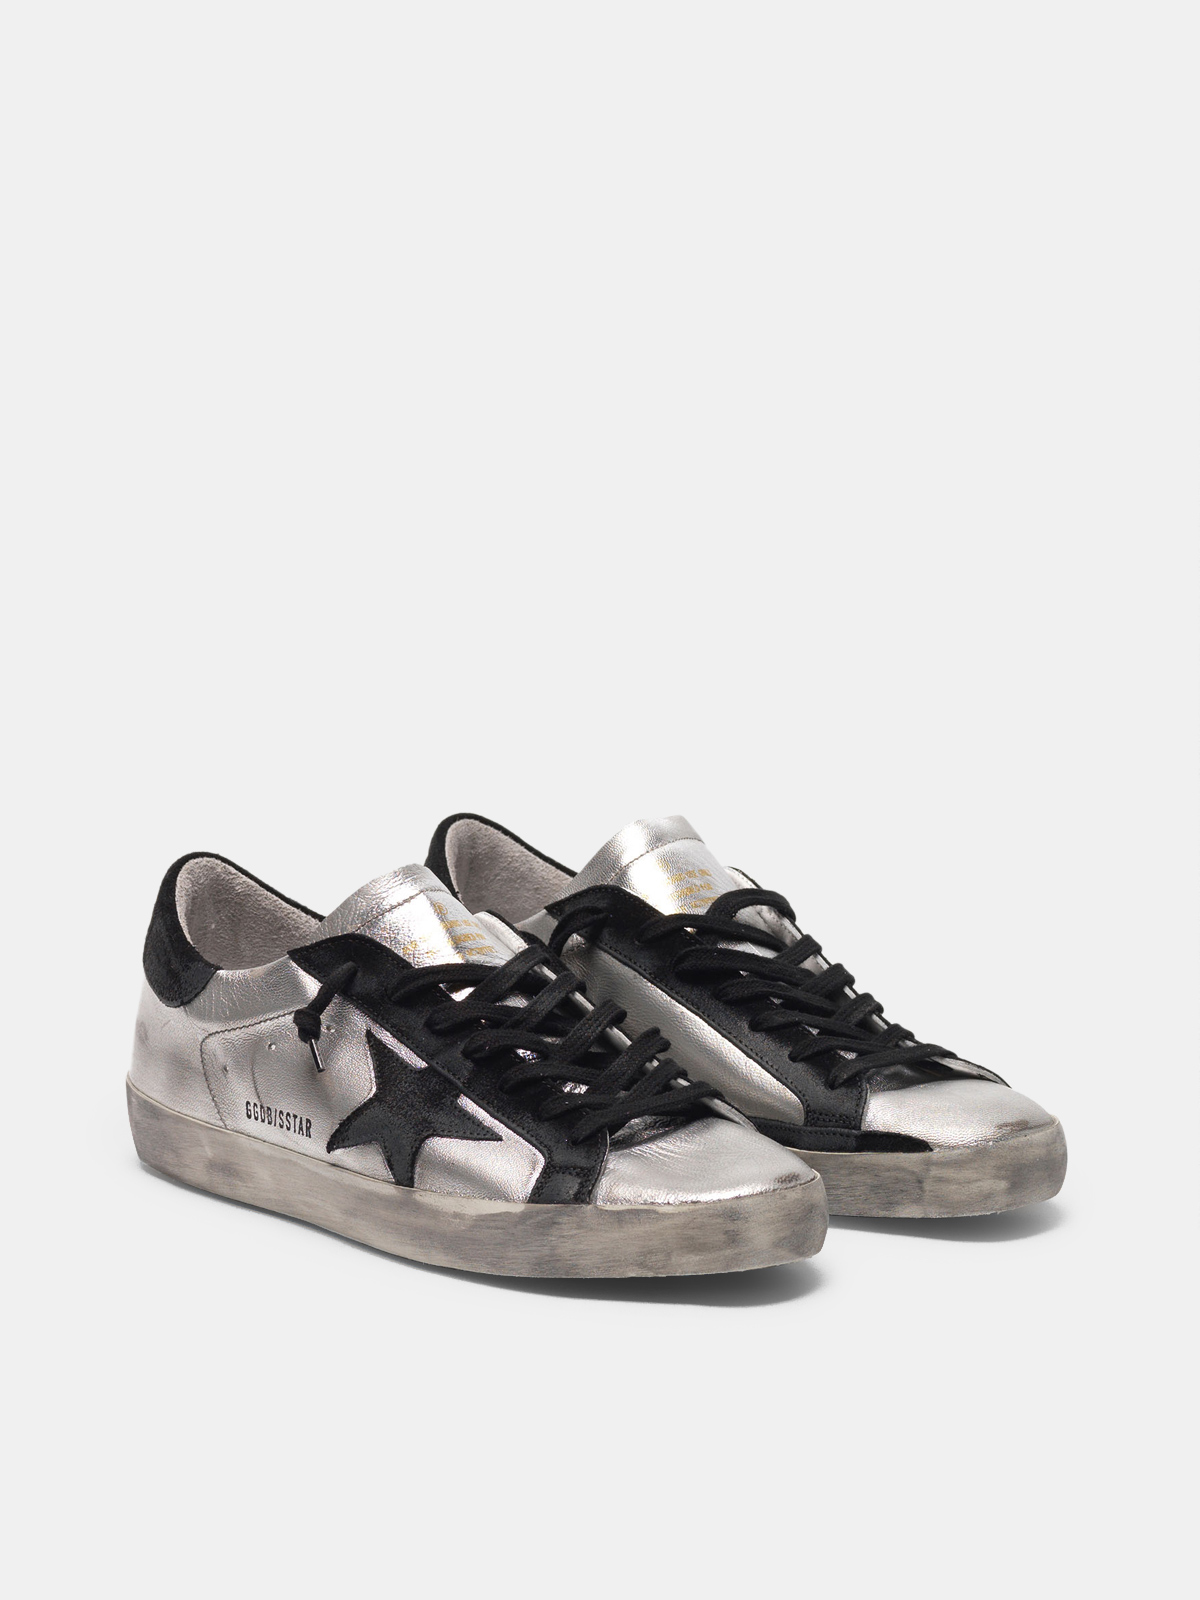 Golden Goose - Super-Star sneakers in silver leather with contrasting inserts in